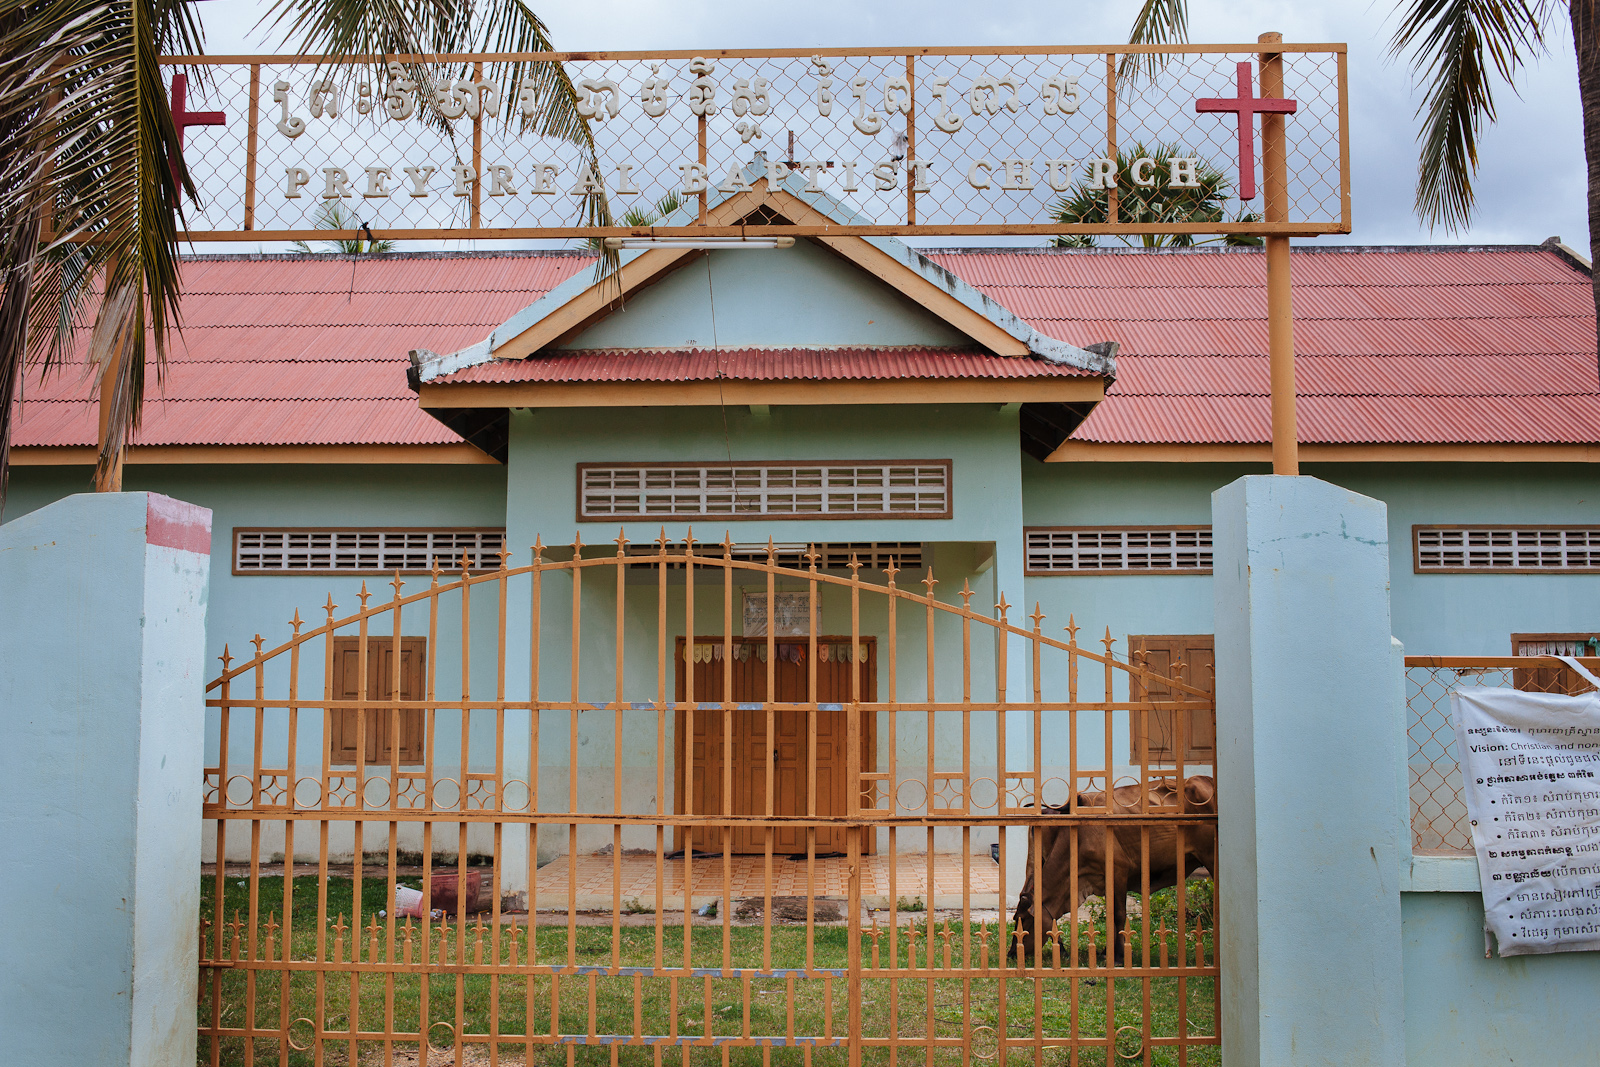 The country church in Kampong Thom that Sorn attends